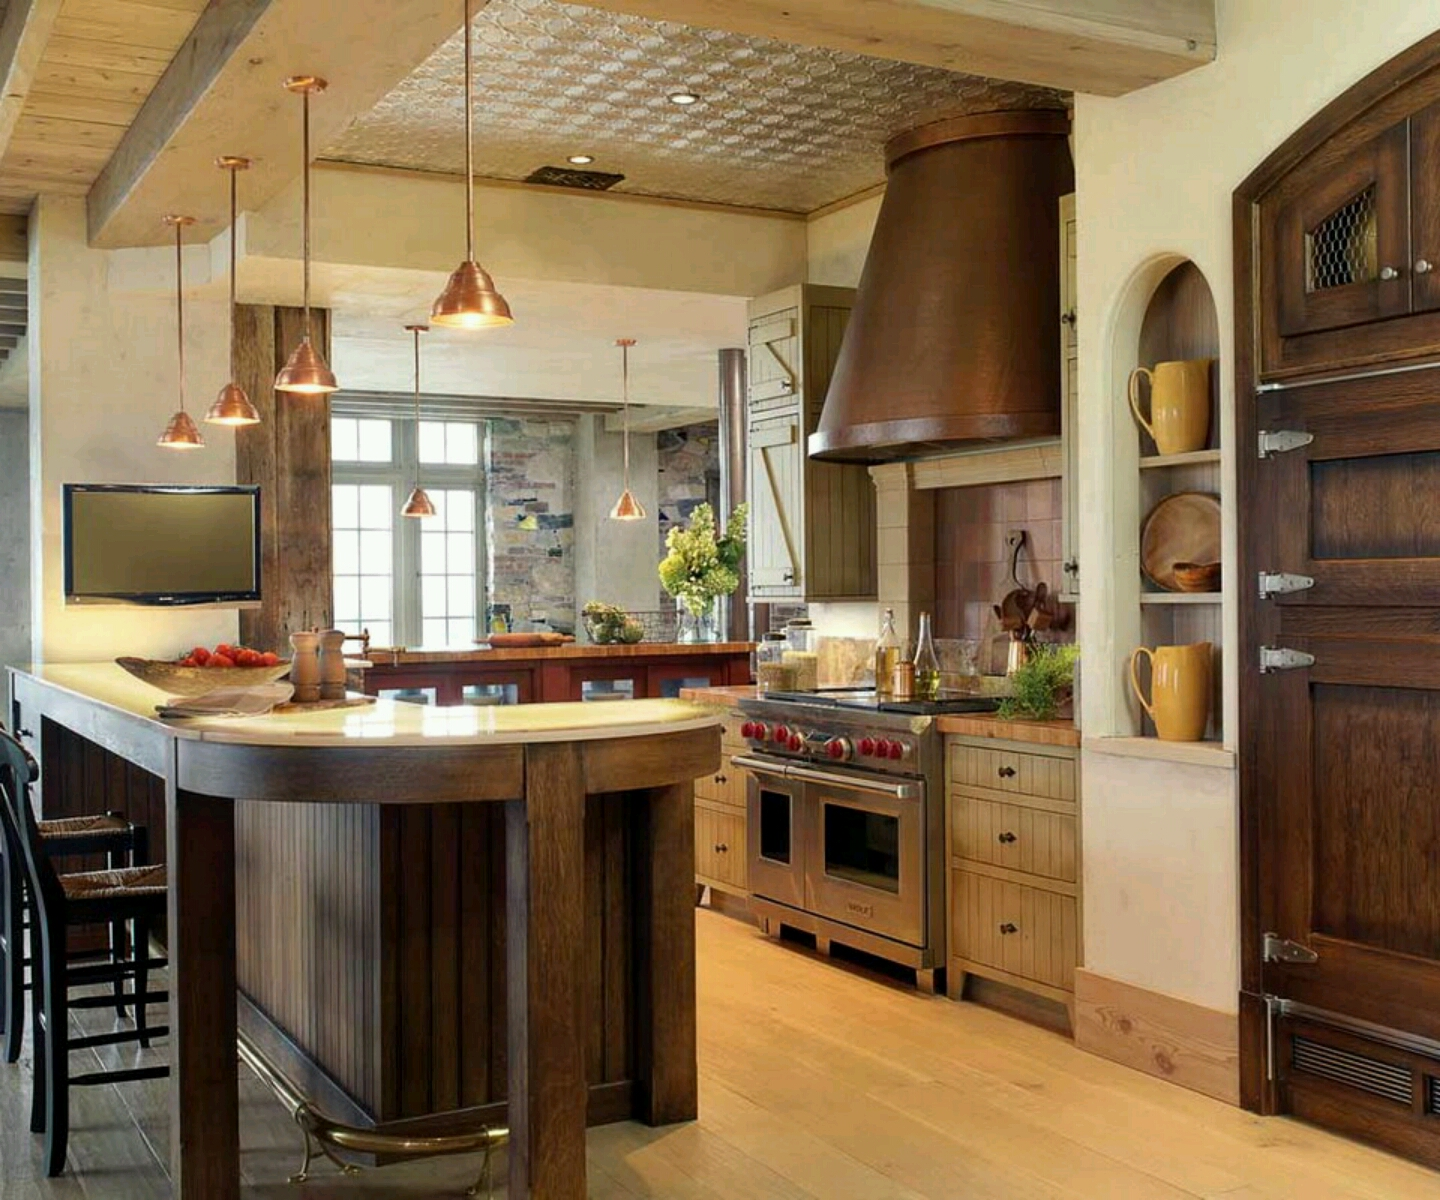 Home Design Ideas Kitchen  Rustic Home Decorating Rustic - House design kitchen ideas